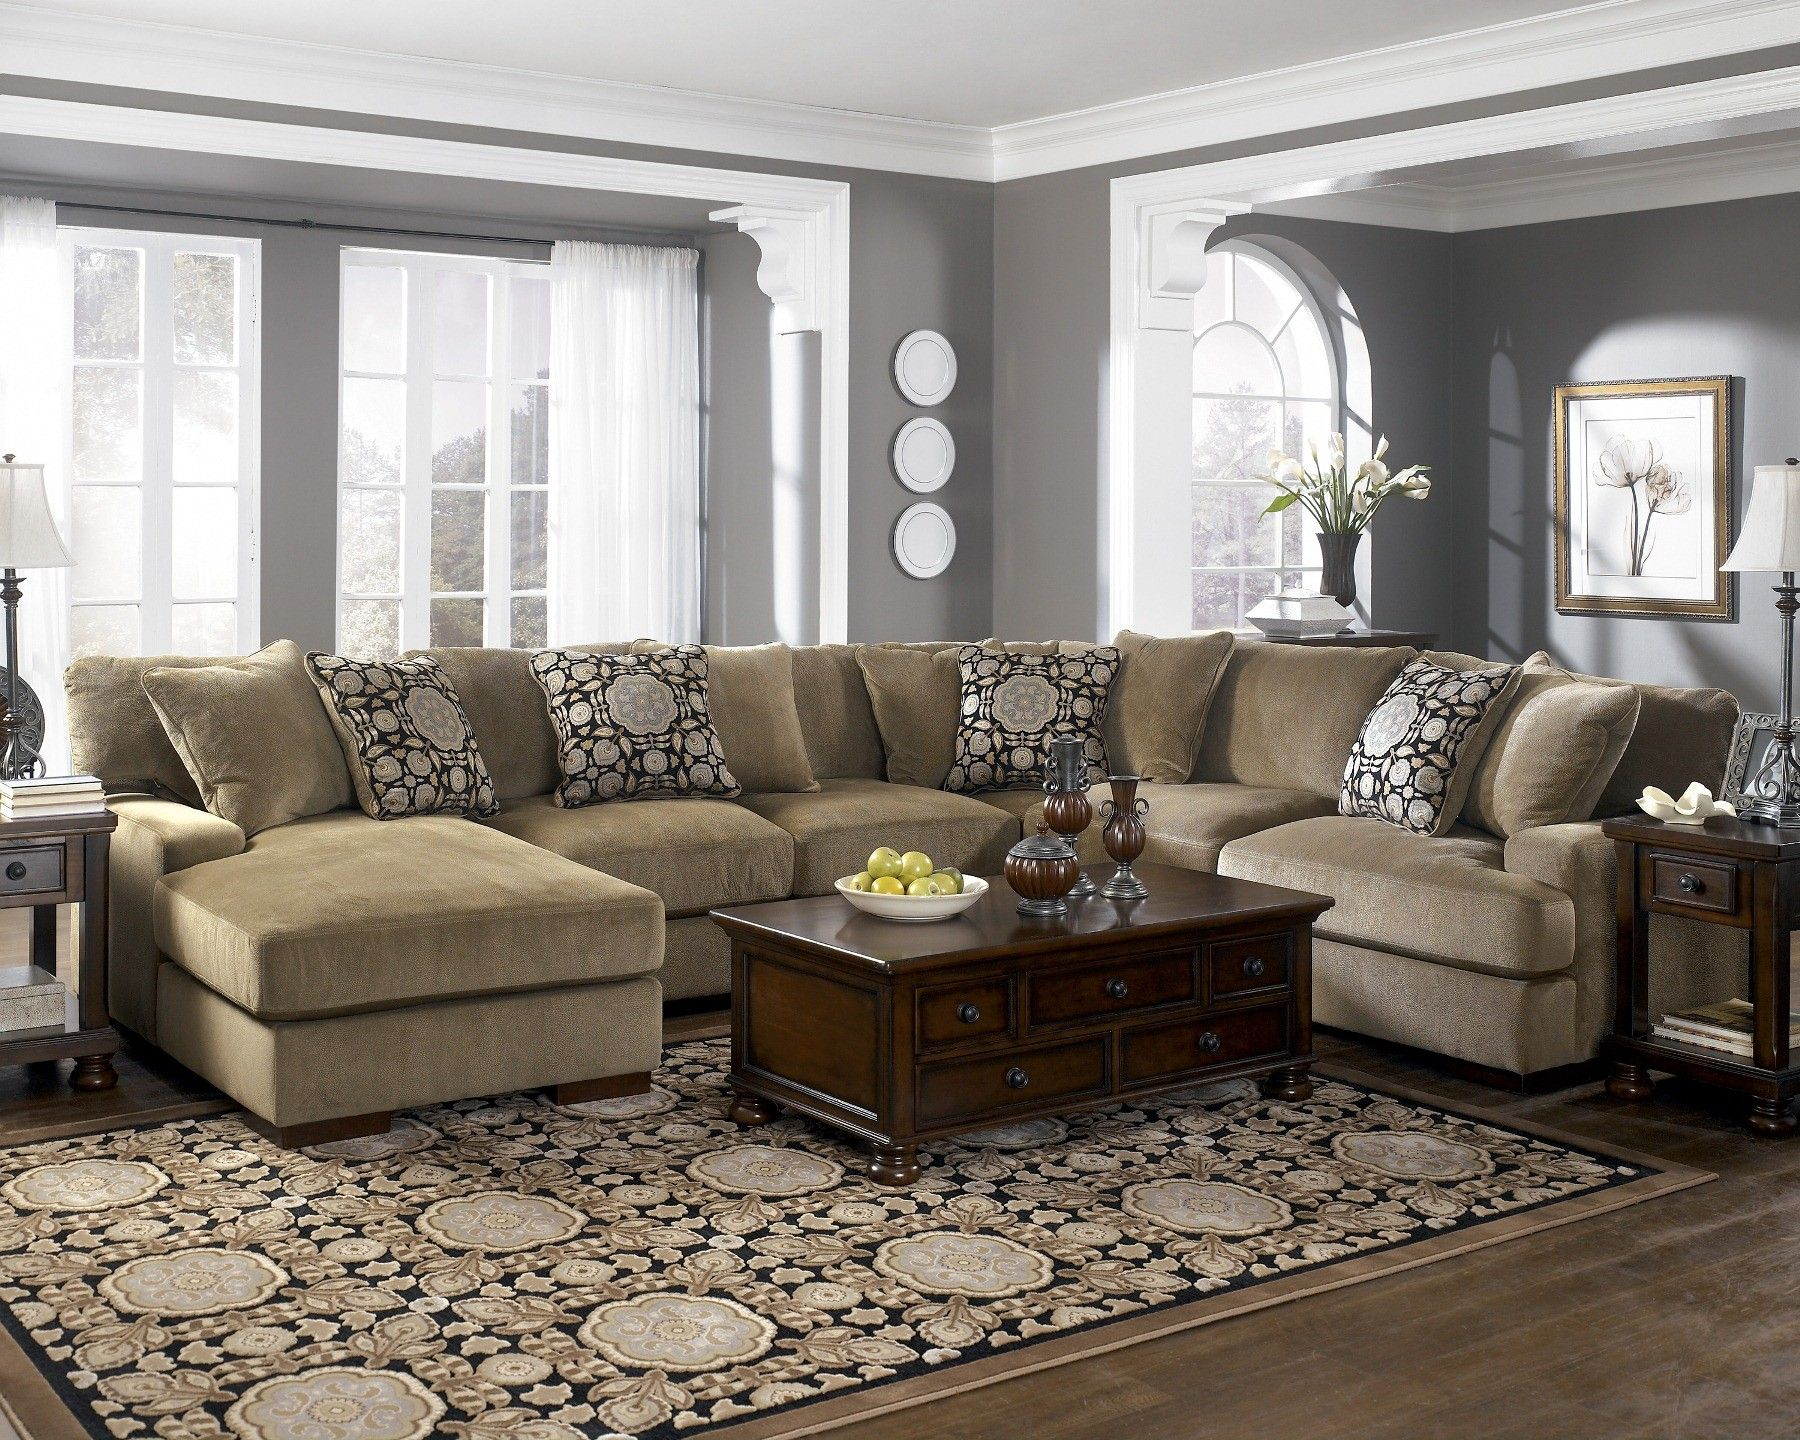 Grenada   Mocha Large Sectional Living Room Set | Sectional Living Room  Sets, Large Sectional And Sectional Living Rooms